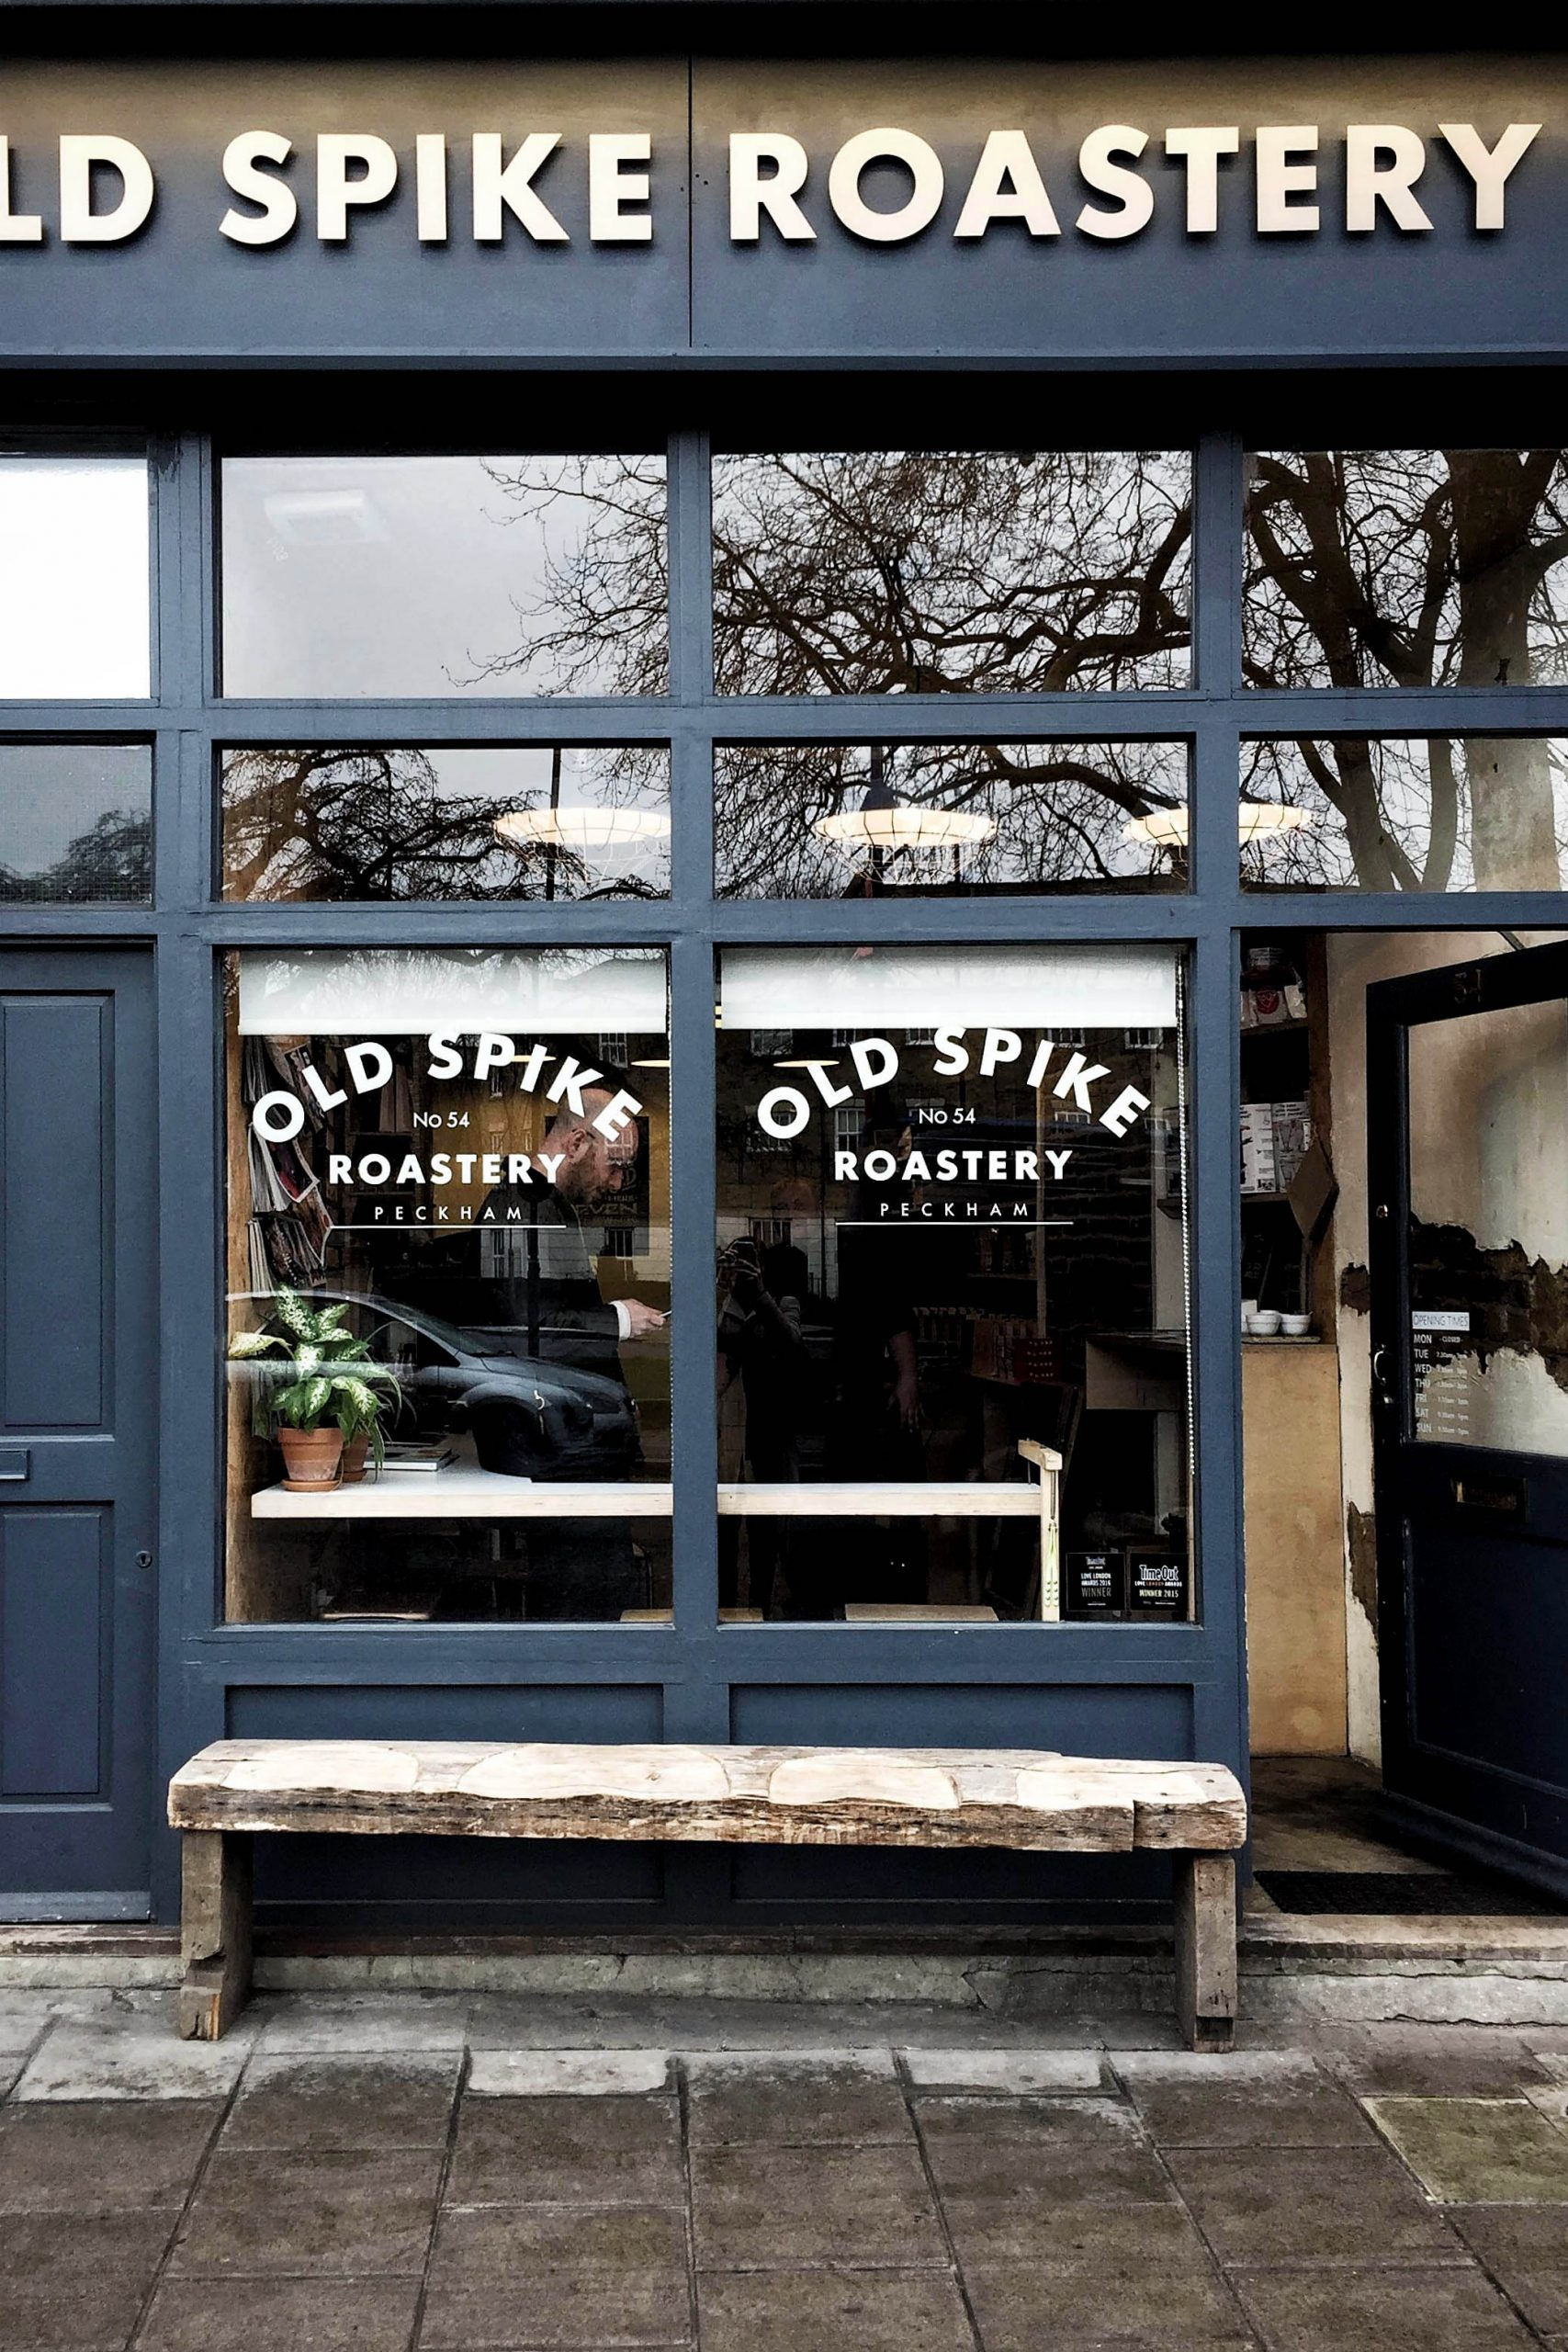 Old Spike is a south east London coffee roaster/café that is also a social enterprise helping the homeless